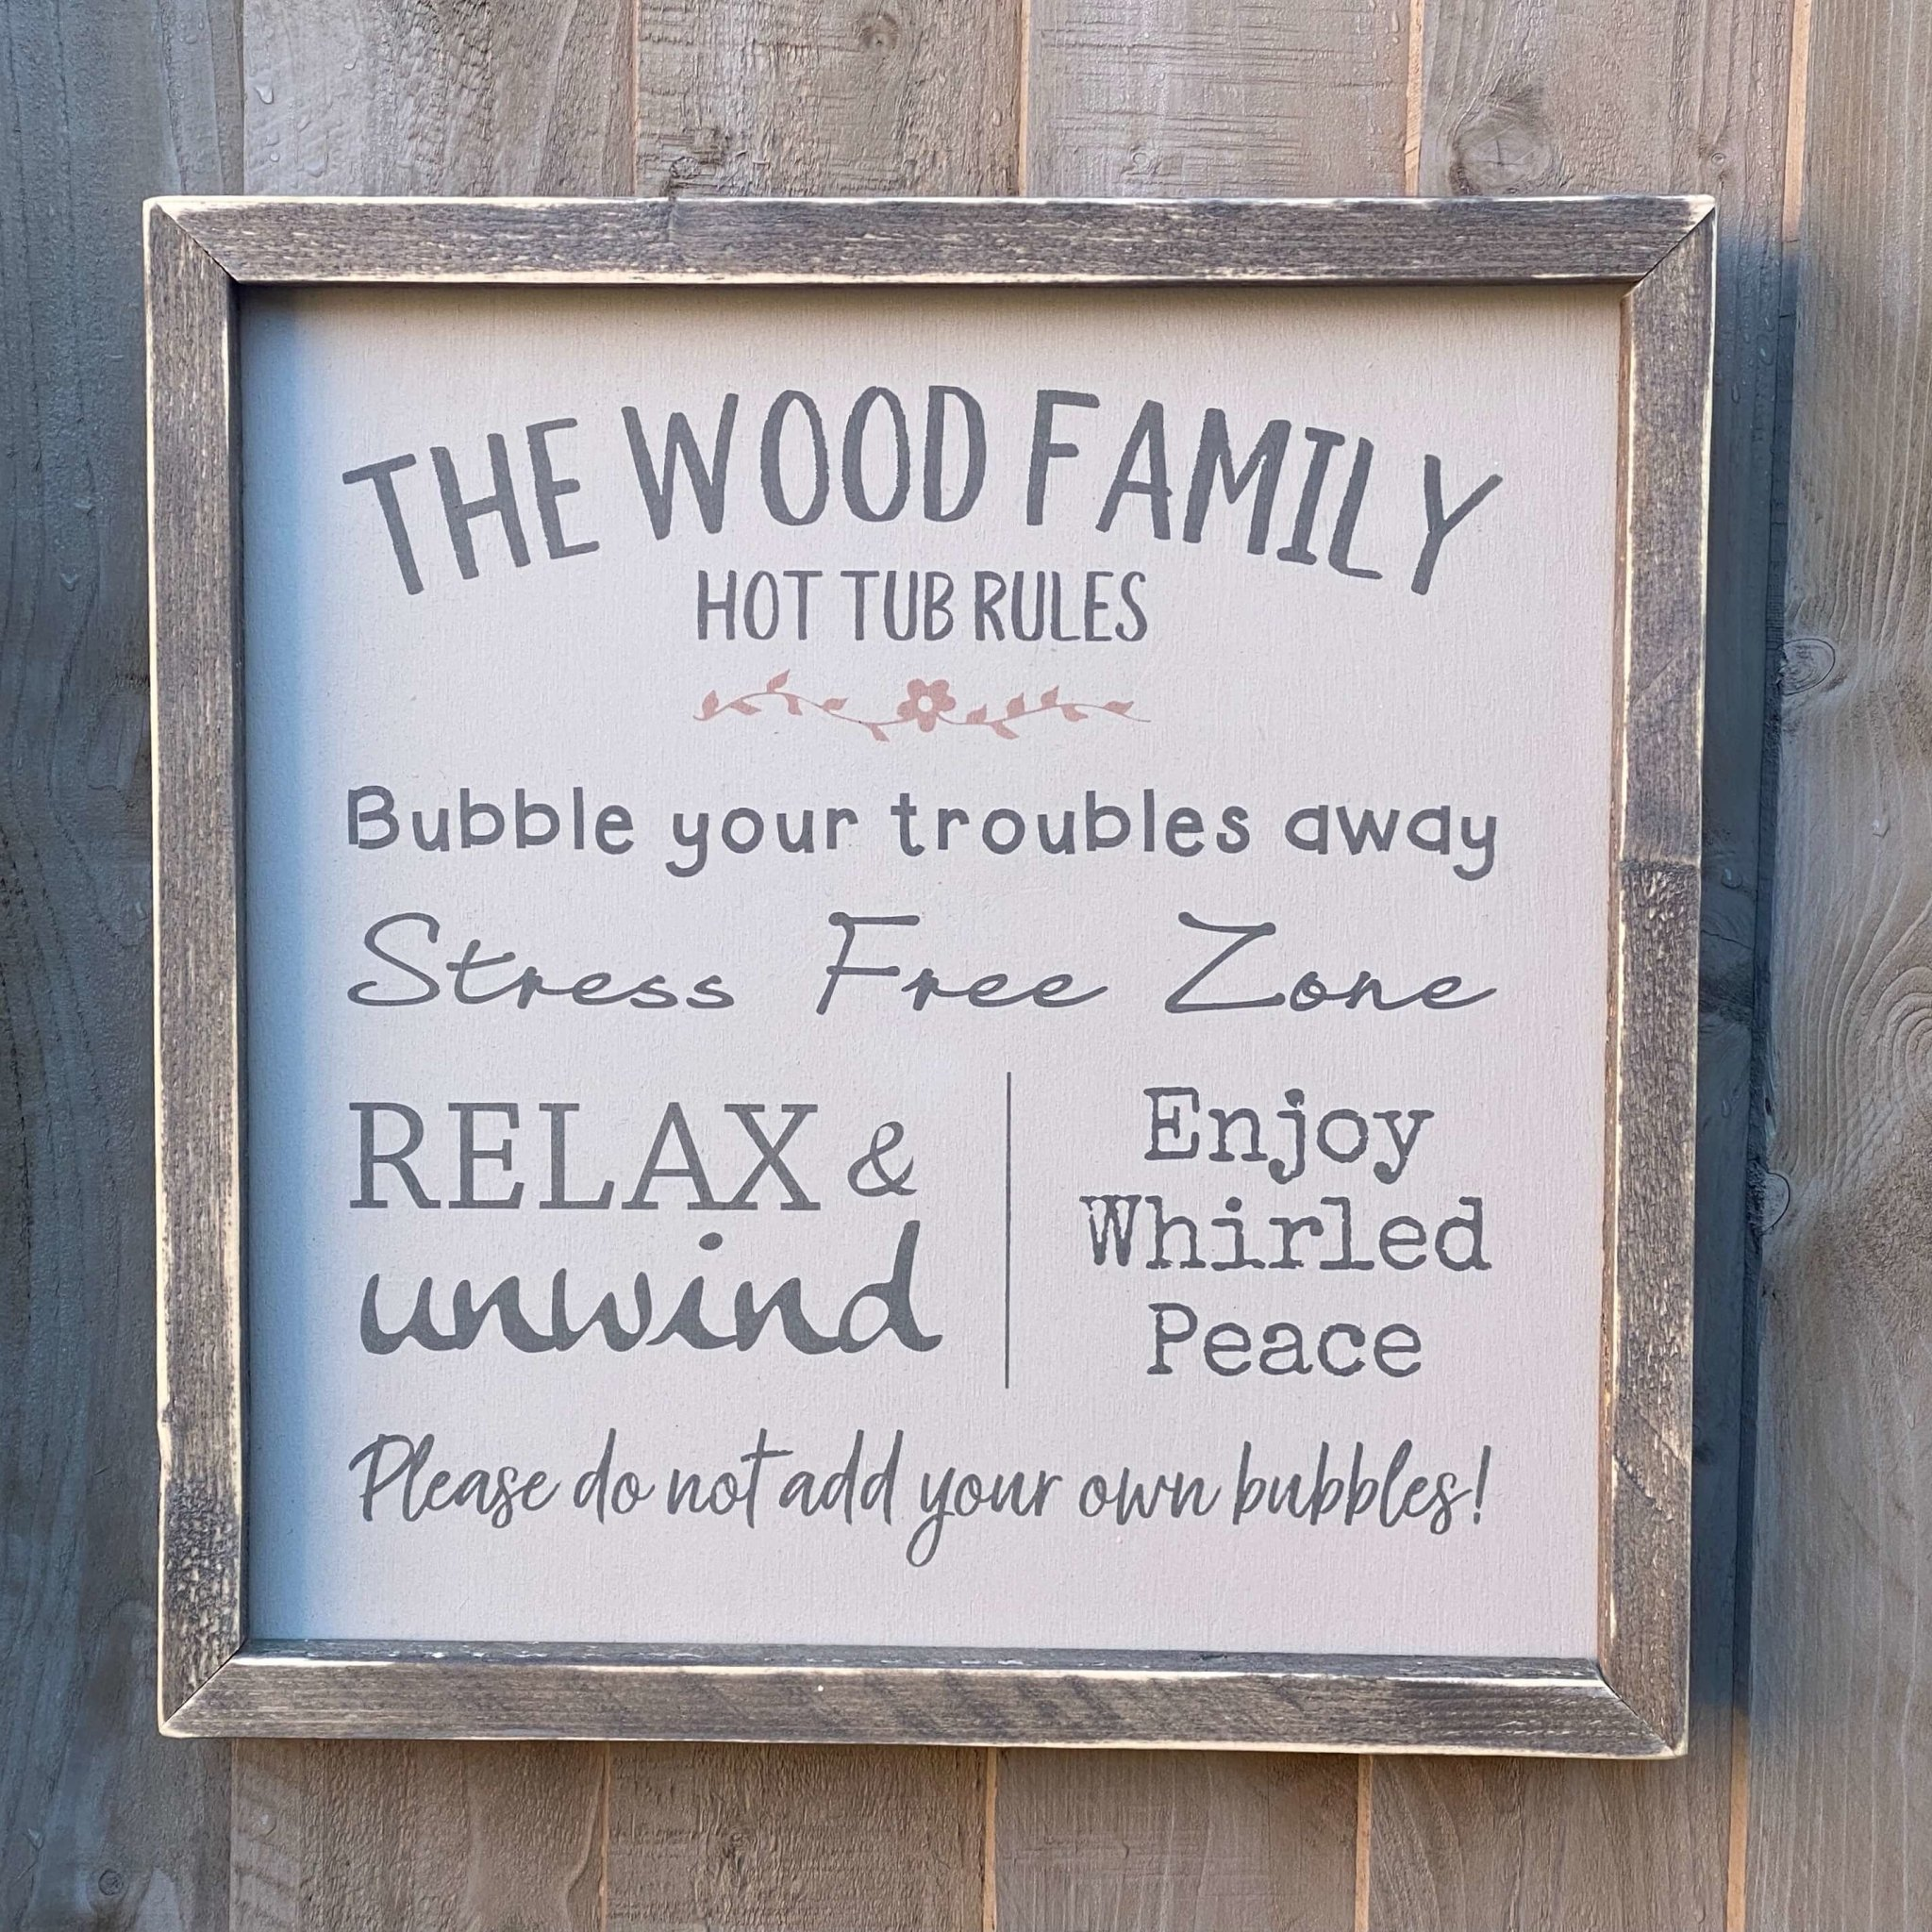 Hot Tub Rules Handmade Wooden Sign